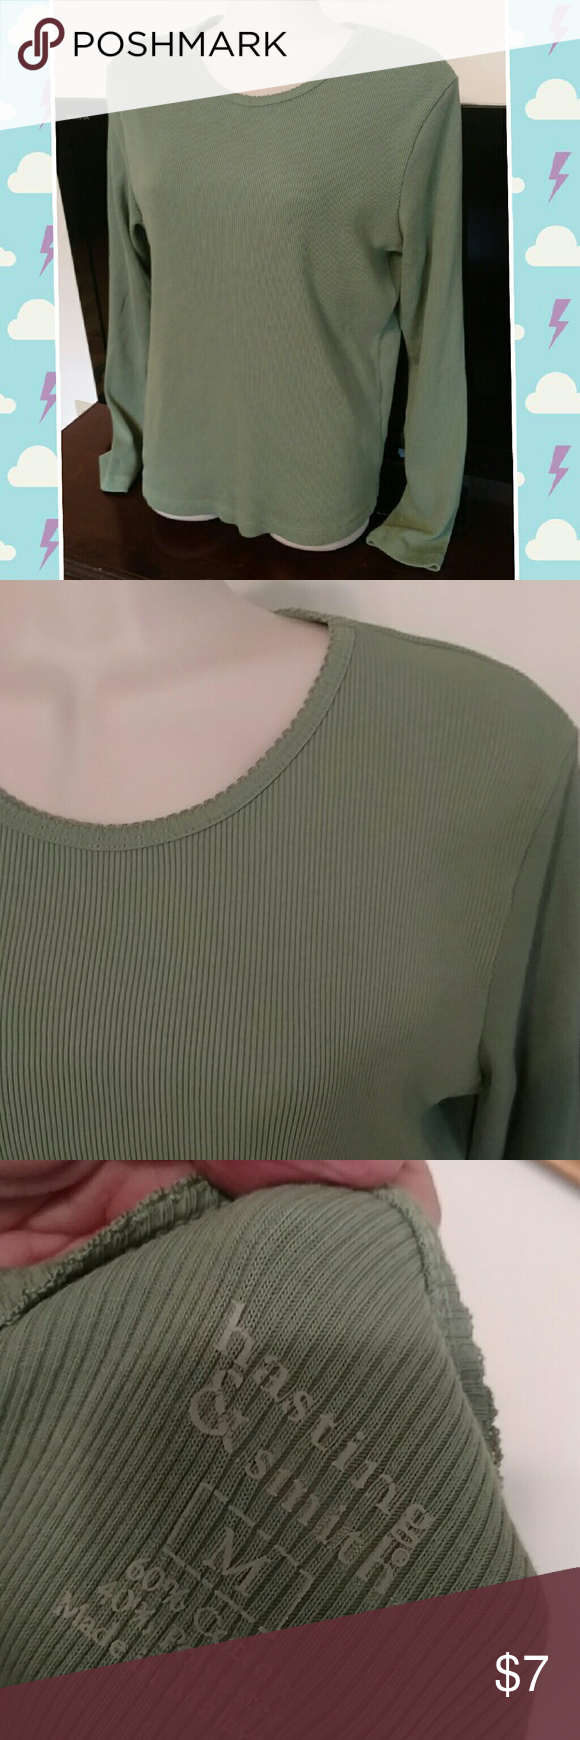 Hastings and smith top sz med Green waffle top w stretch. Sz med Hastings and smith Tops